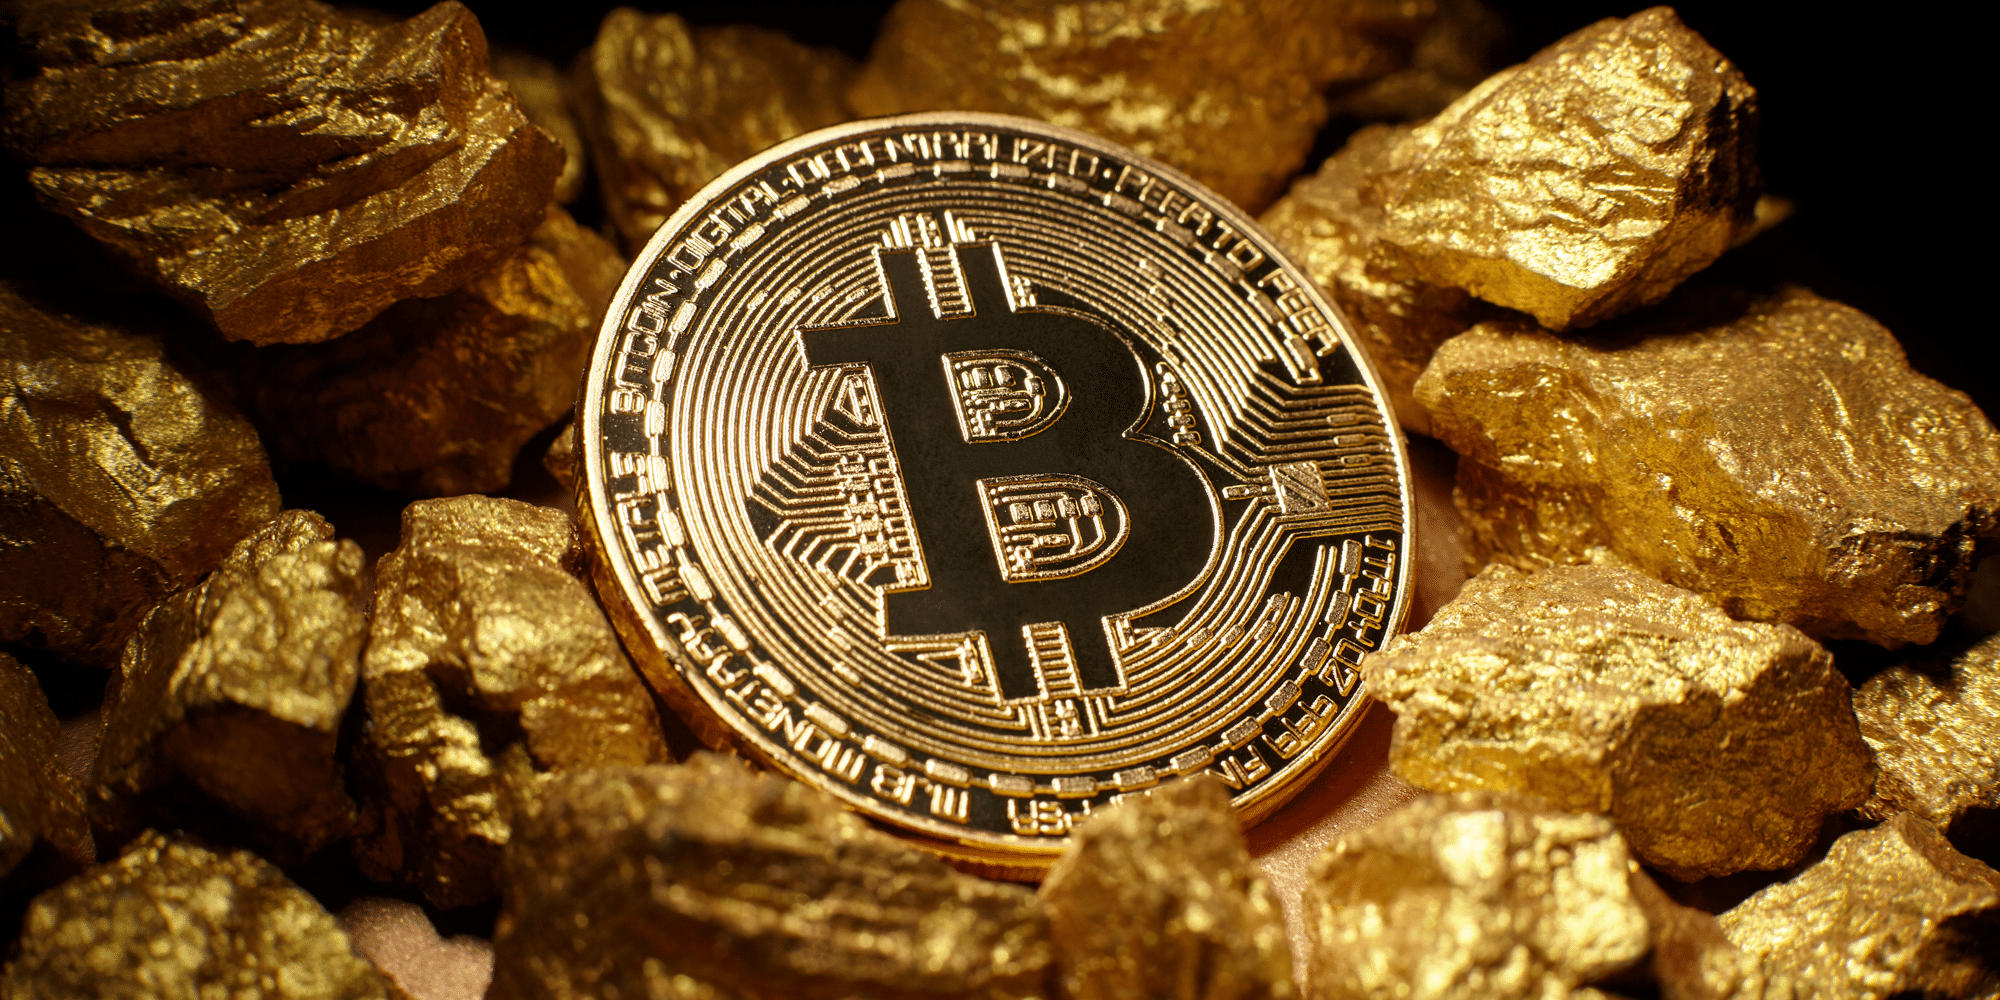 Robert Kiyosaki prefers Gold over Bitcoin